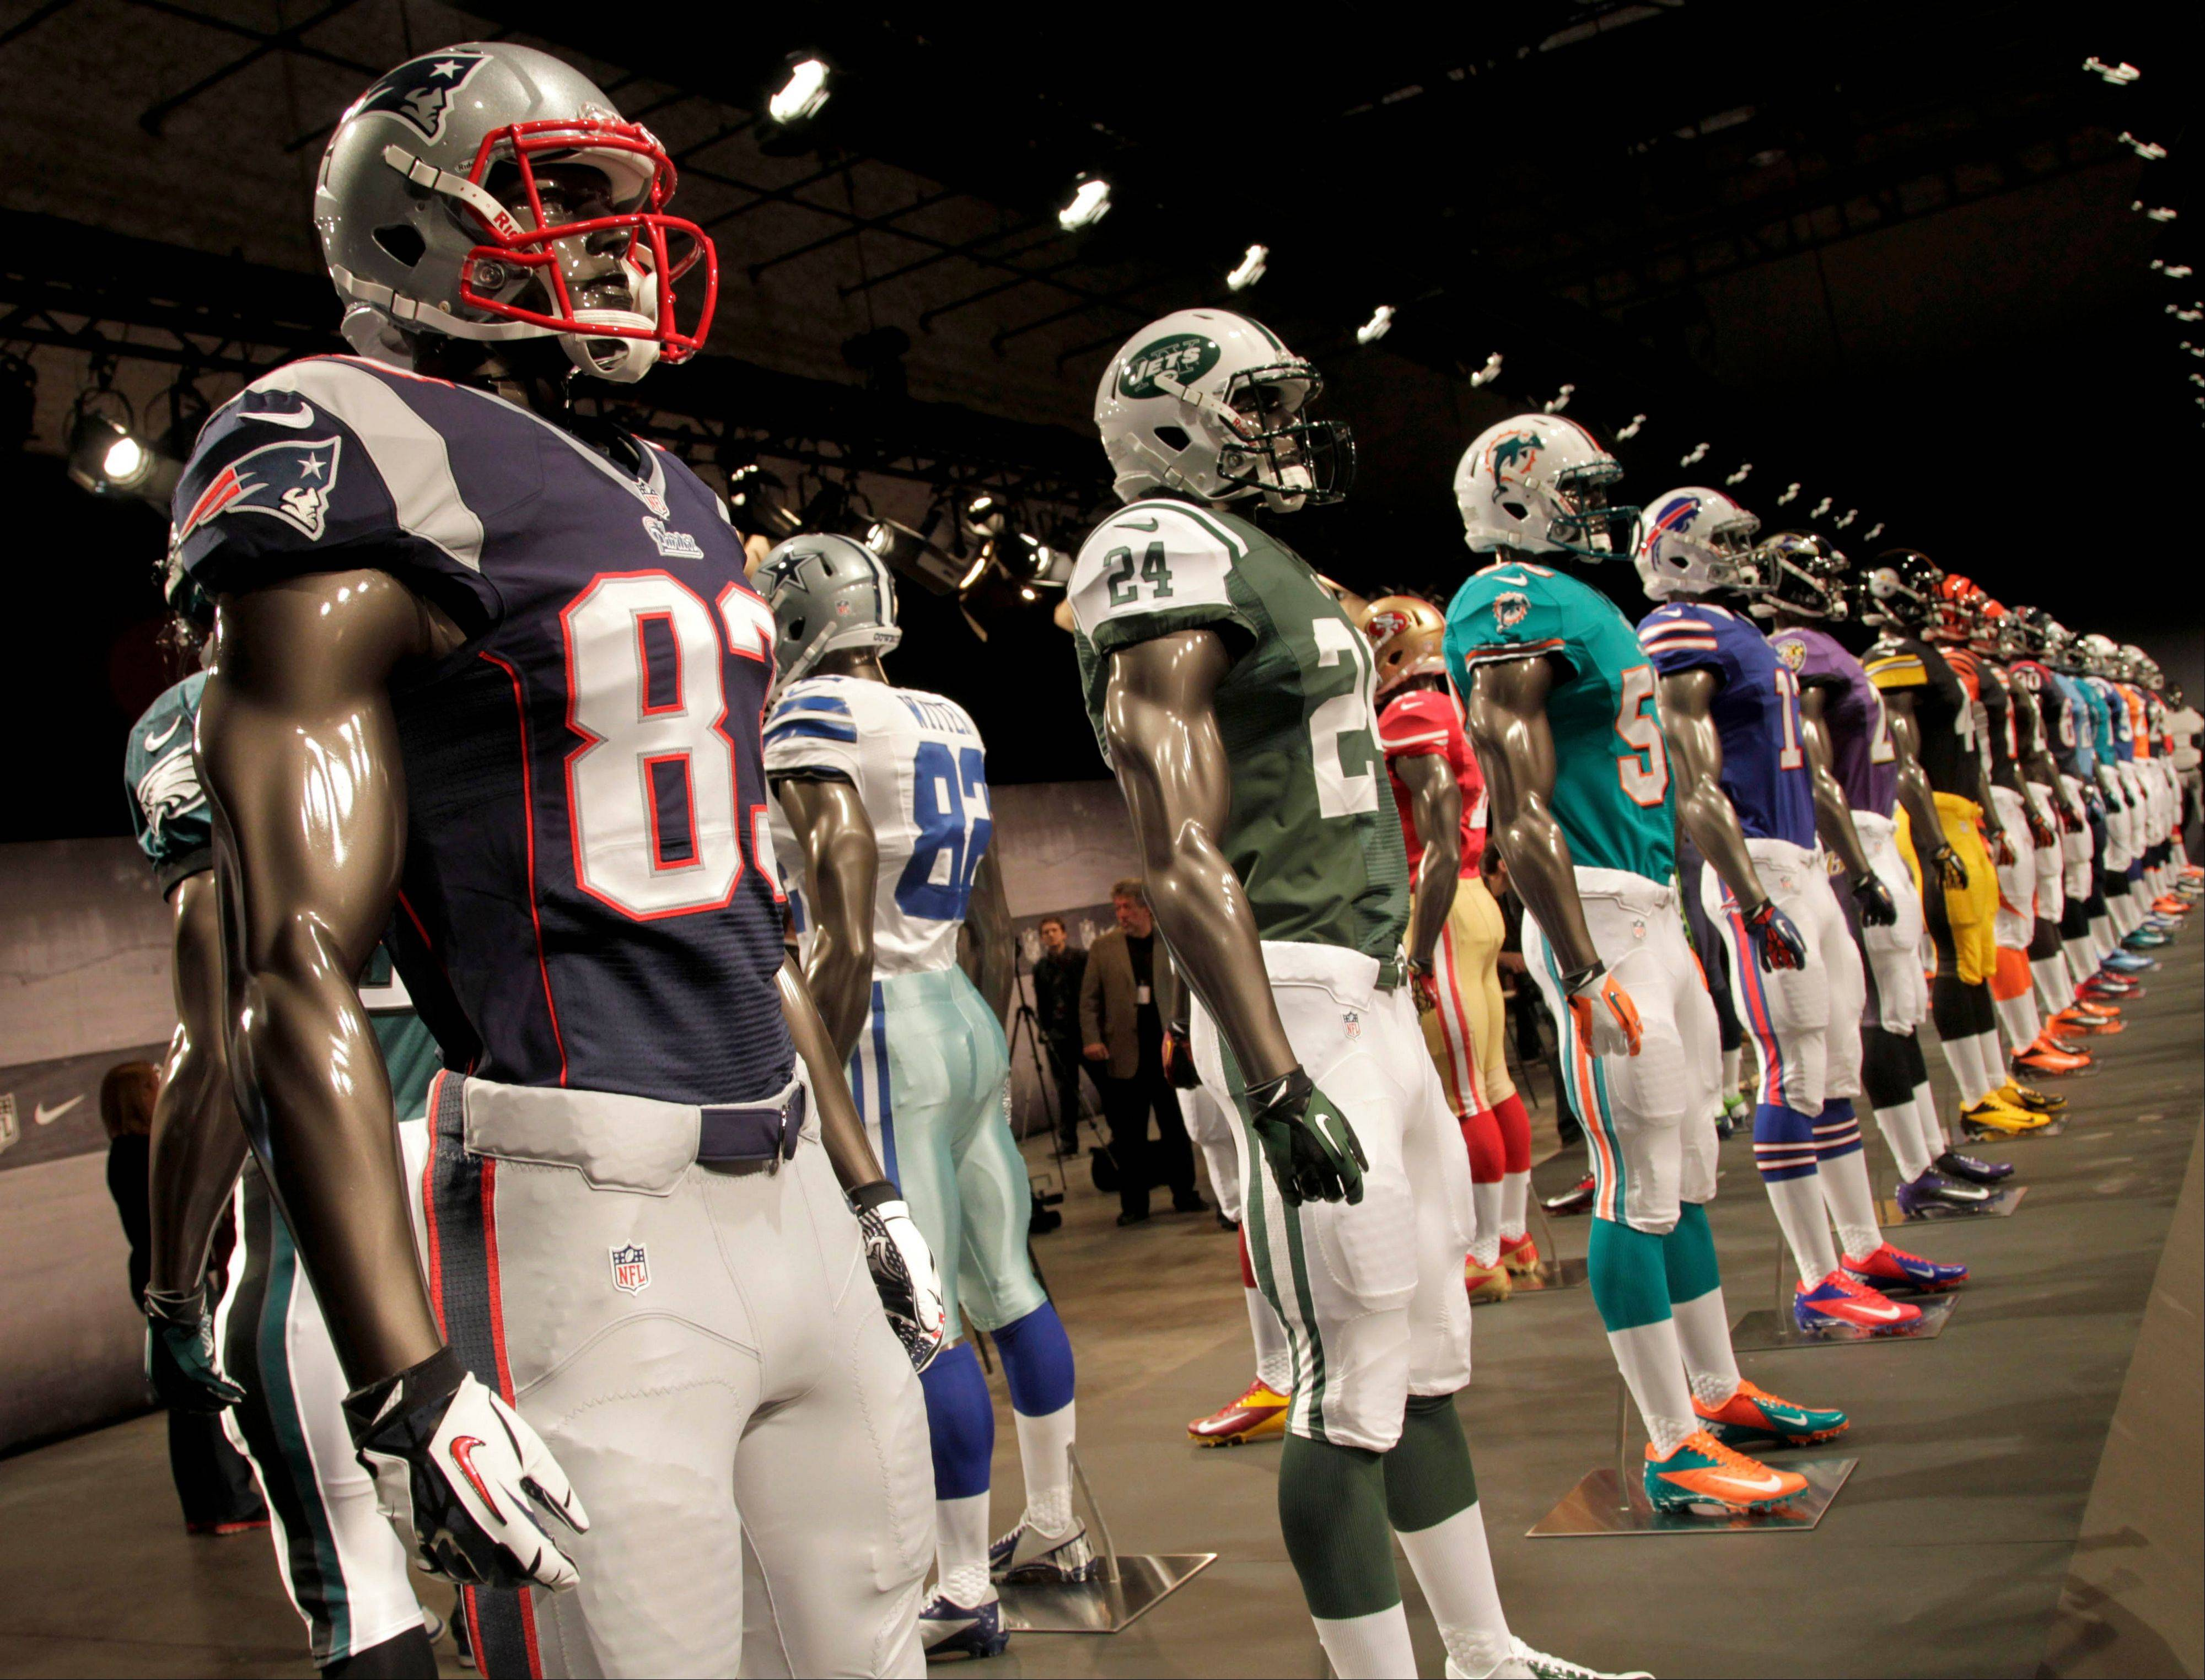 New NFL uniforms are displayed on mannequins during a presentation in New York, Tuesday, April 3, 2012. The NFL and Nike showed off the new look in grand style with a gridiron-styled fashion show at a Brooklyn film studio.